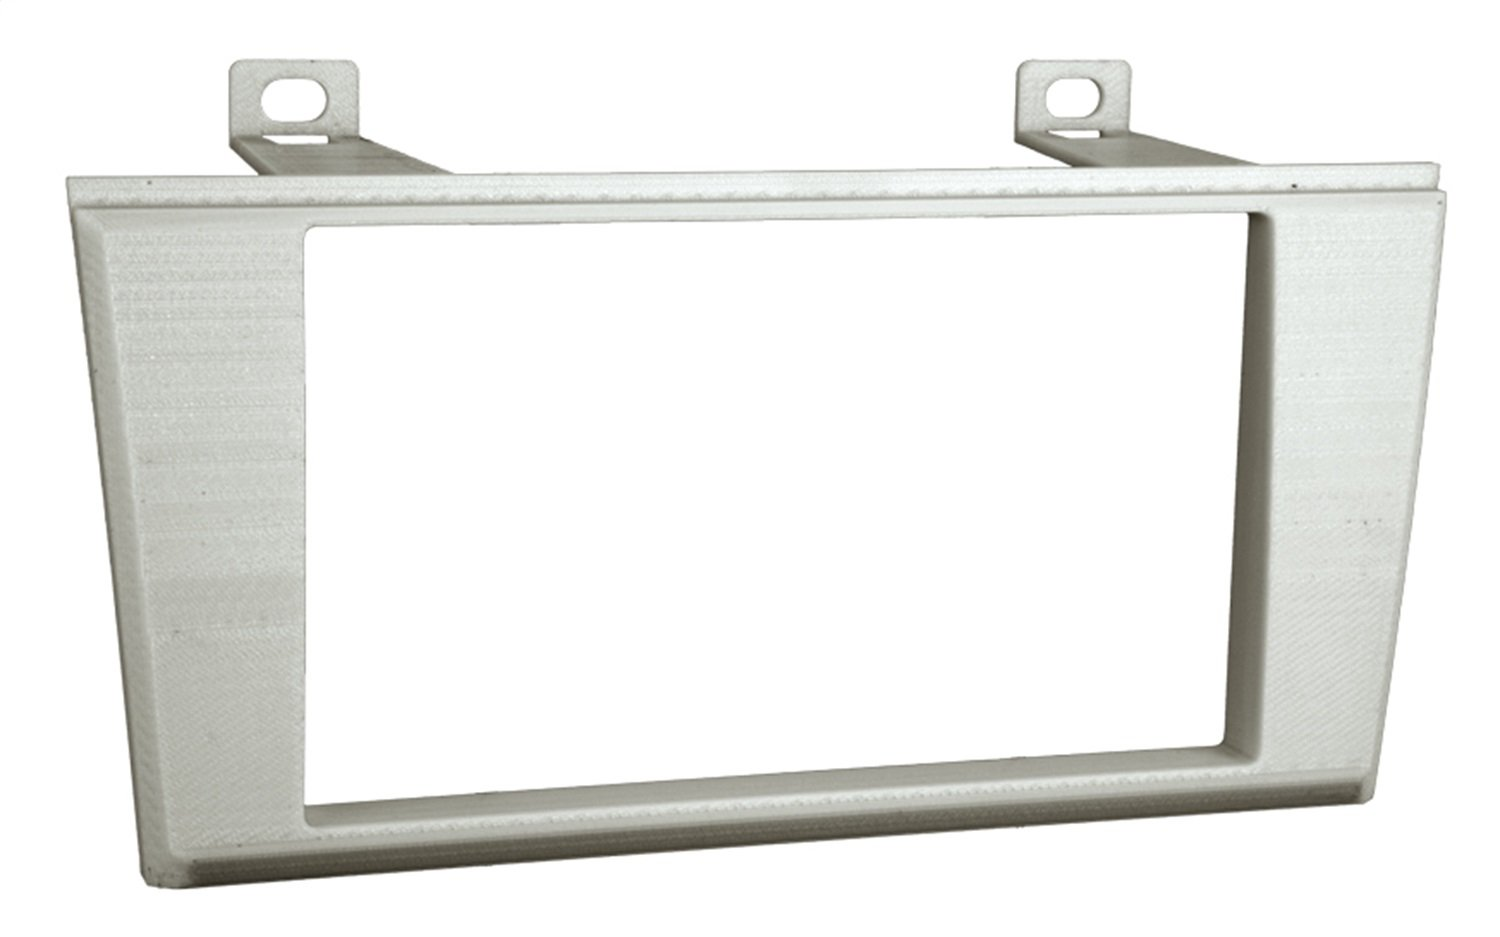 Metra 95-5000S Double DIN Installation Dash Kit for 2000-2006 Lincoln LS or 2002-2005 Ford T-Bird (Silver) Metra Electronics Corporation